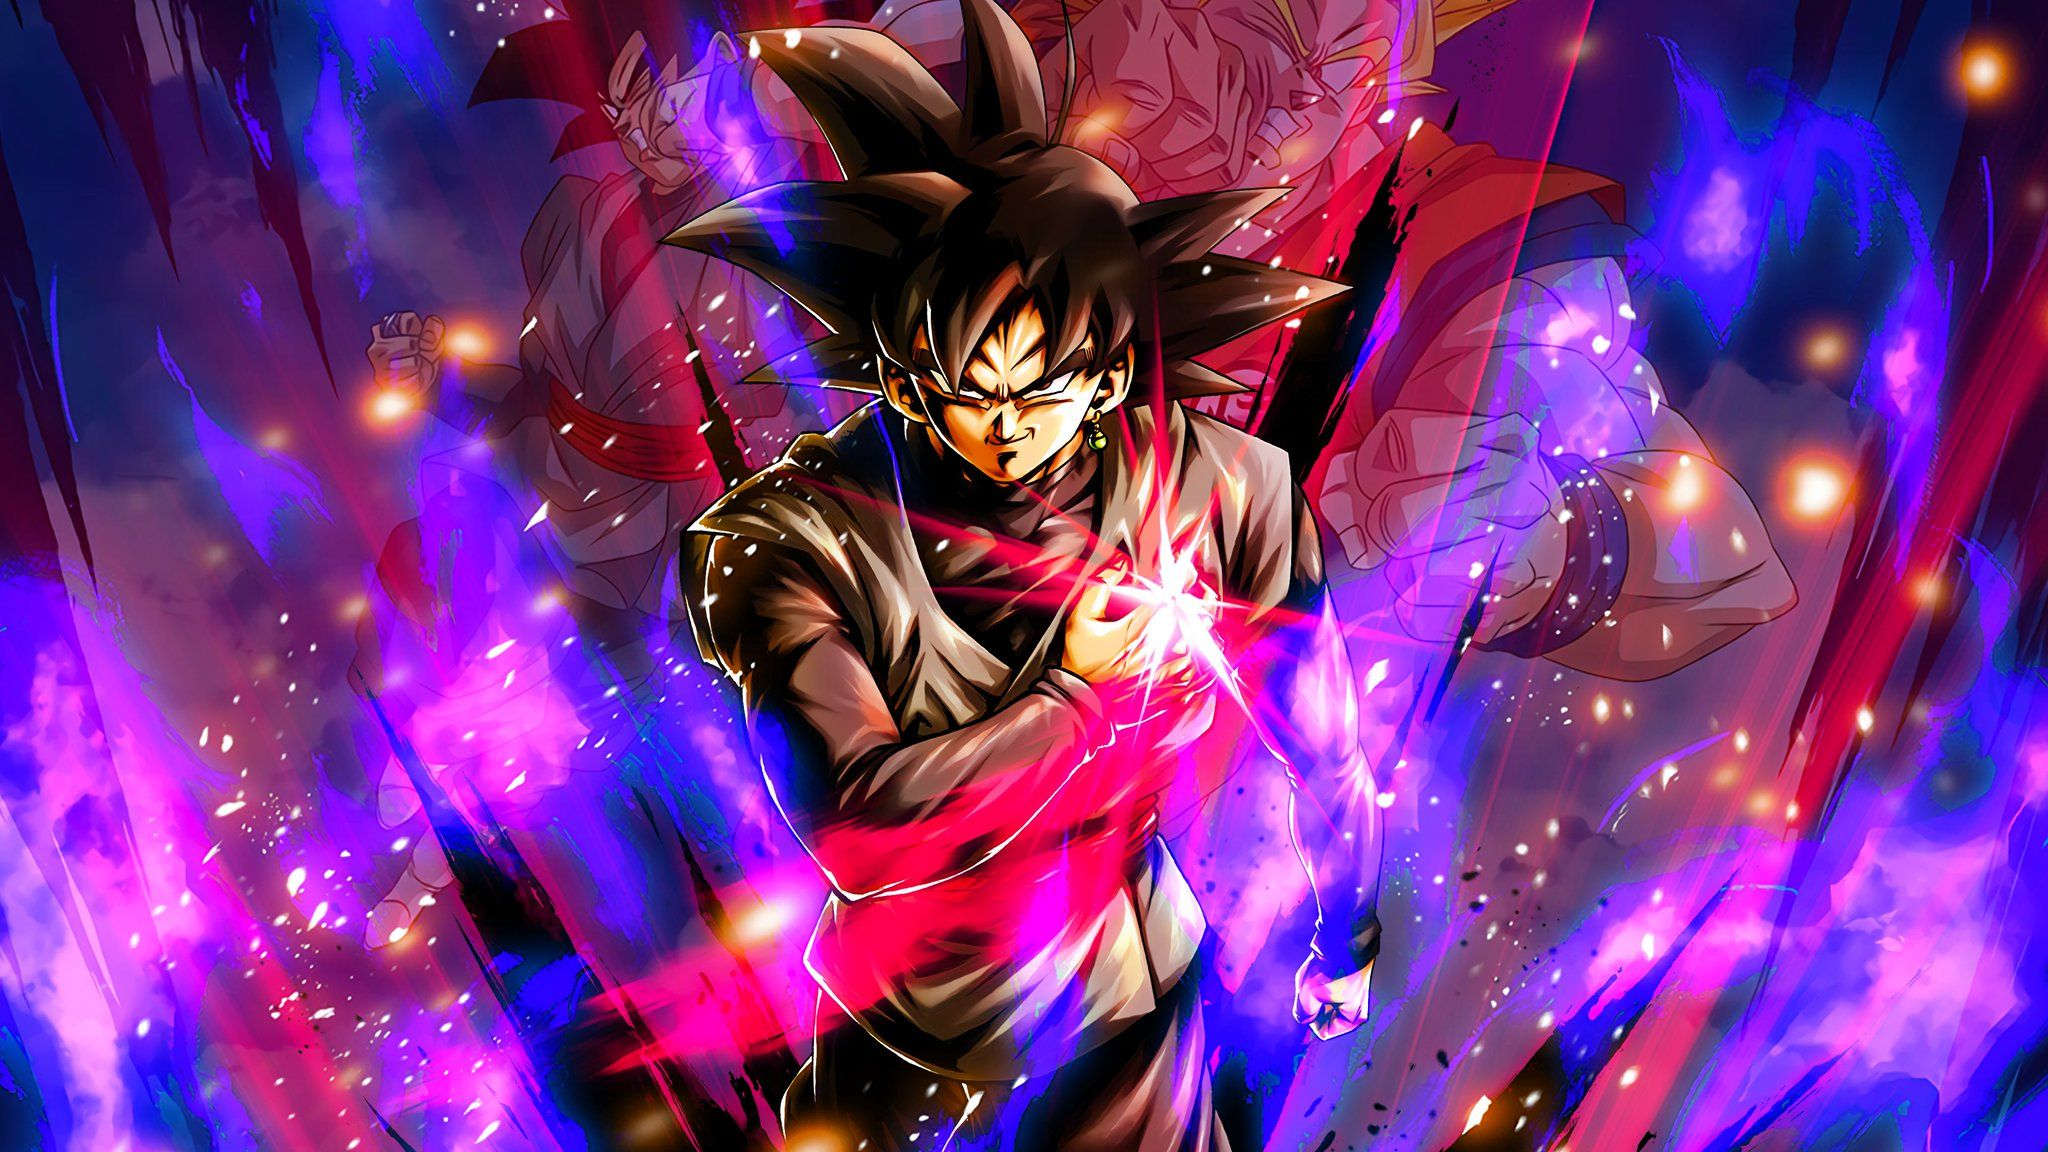 Hydros On Twitter 4k Wallpapers For Pc Goku Black 4k Phone Wallpapers